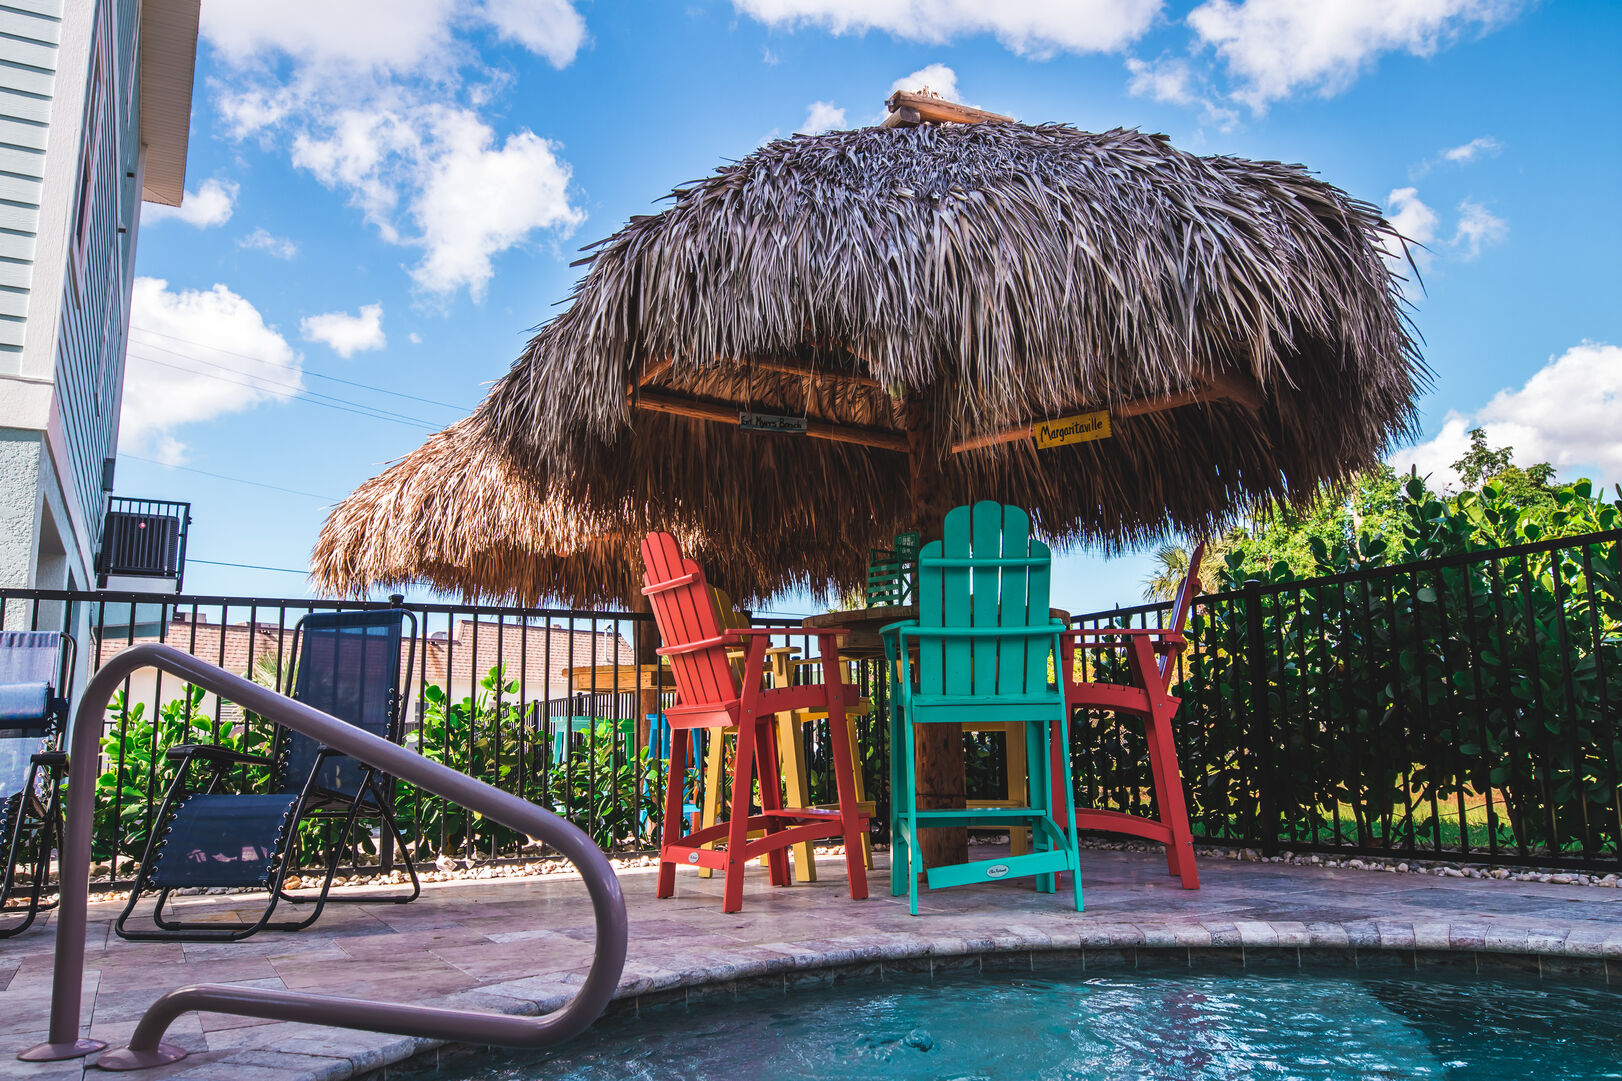 Seating and straw umbrella by the pool.